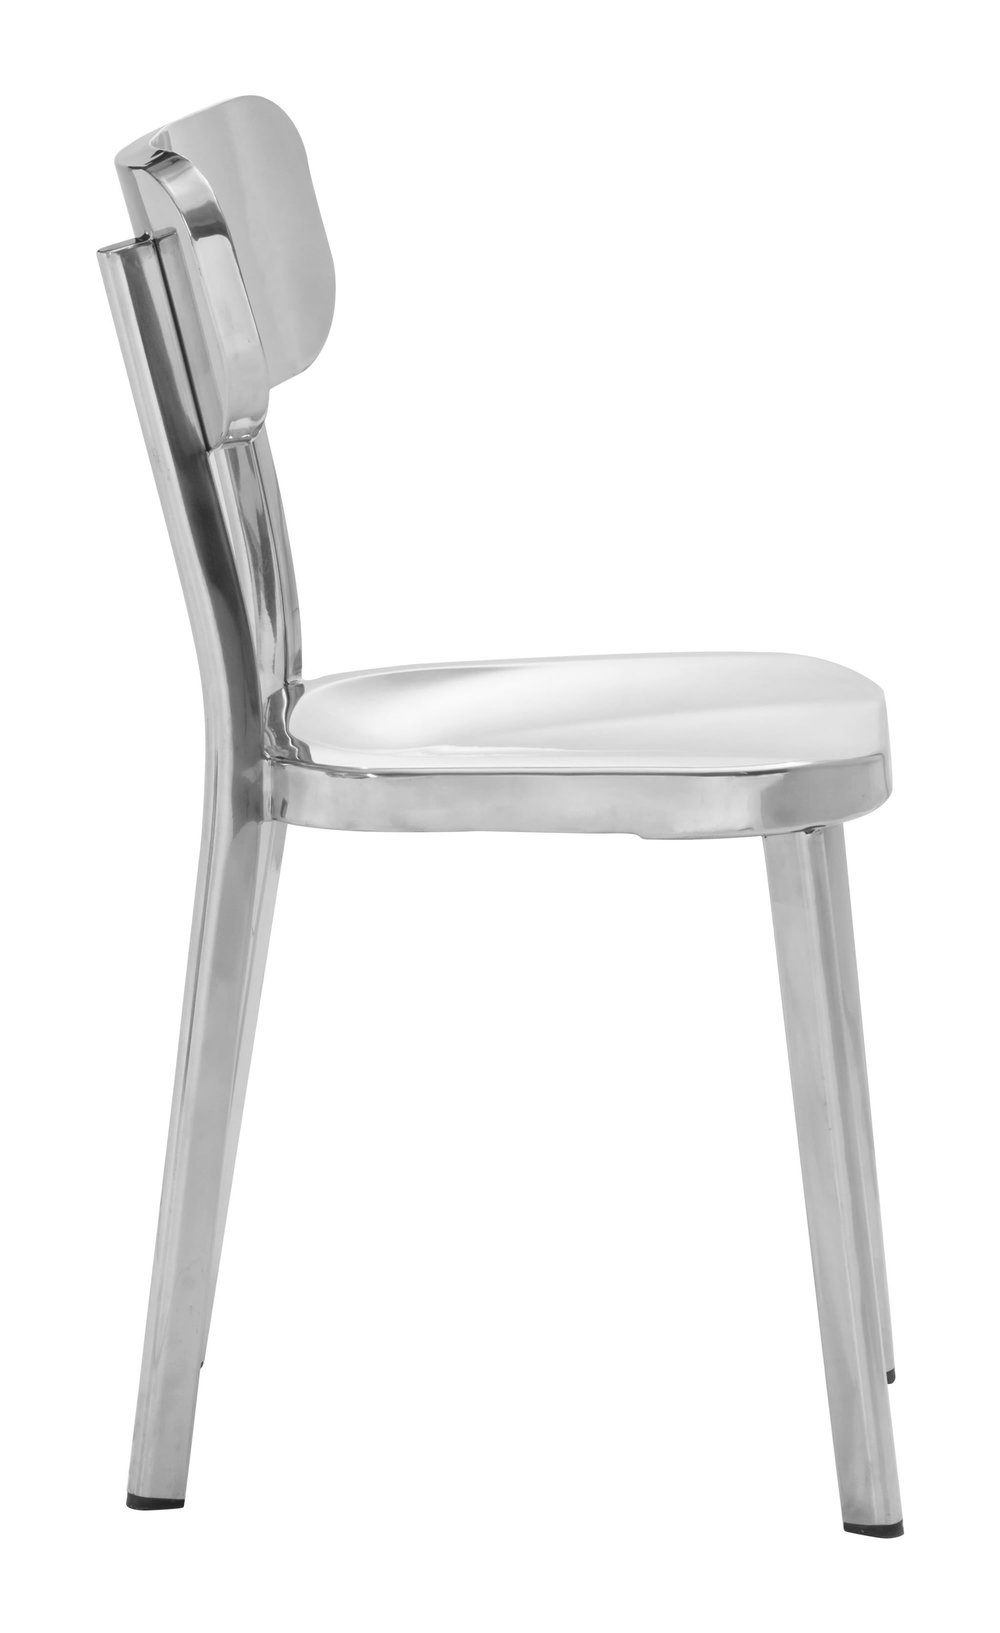 ZUO MODERN CONTEMPORARY, INC - Winter Dining Chair - Set of 2 - Polished Stainless Steel